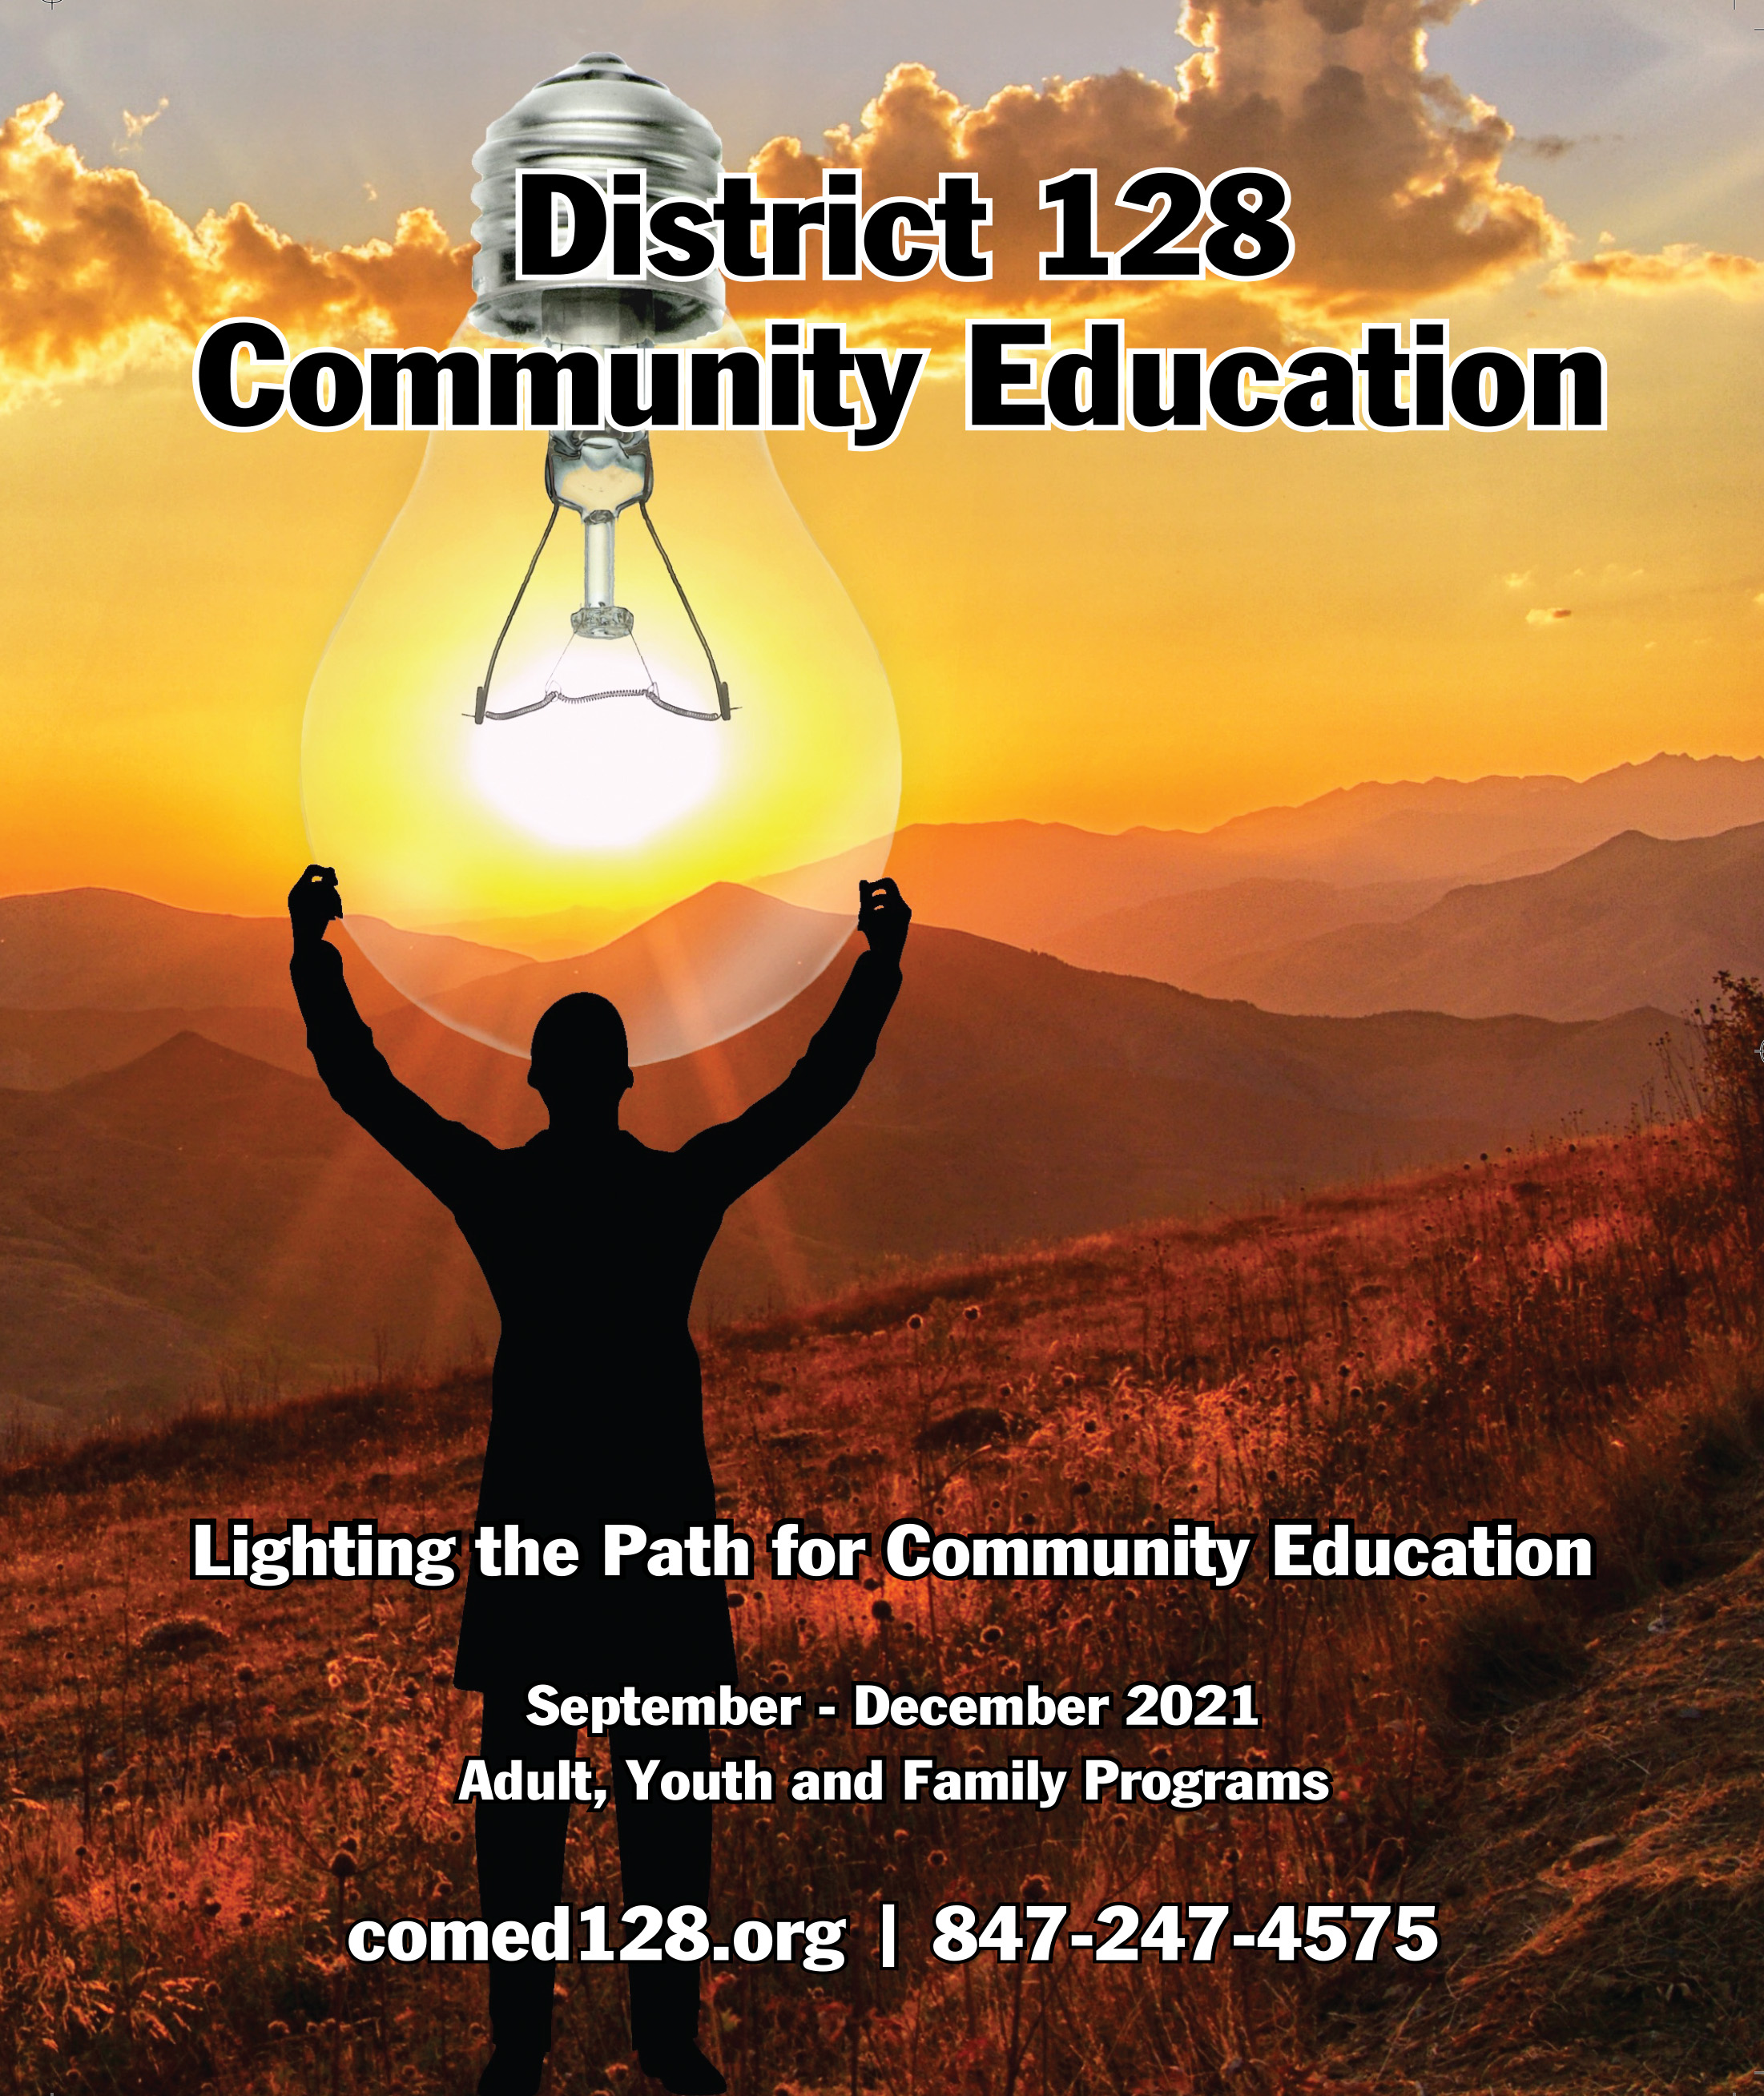 District 128 Community